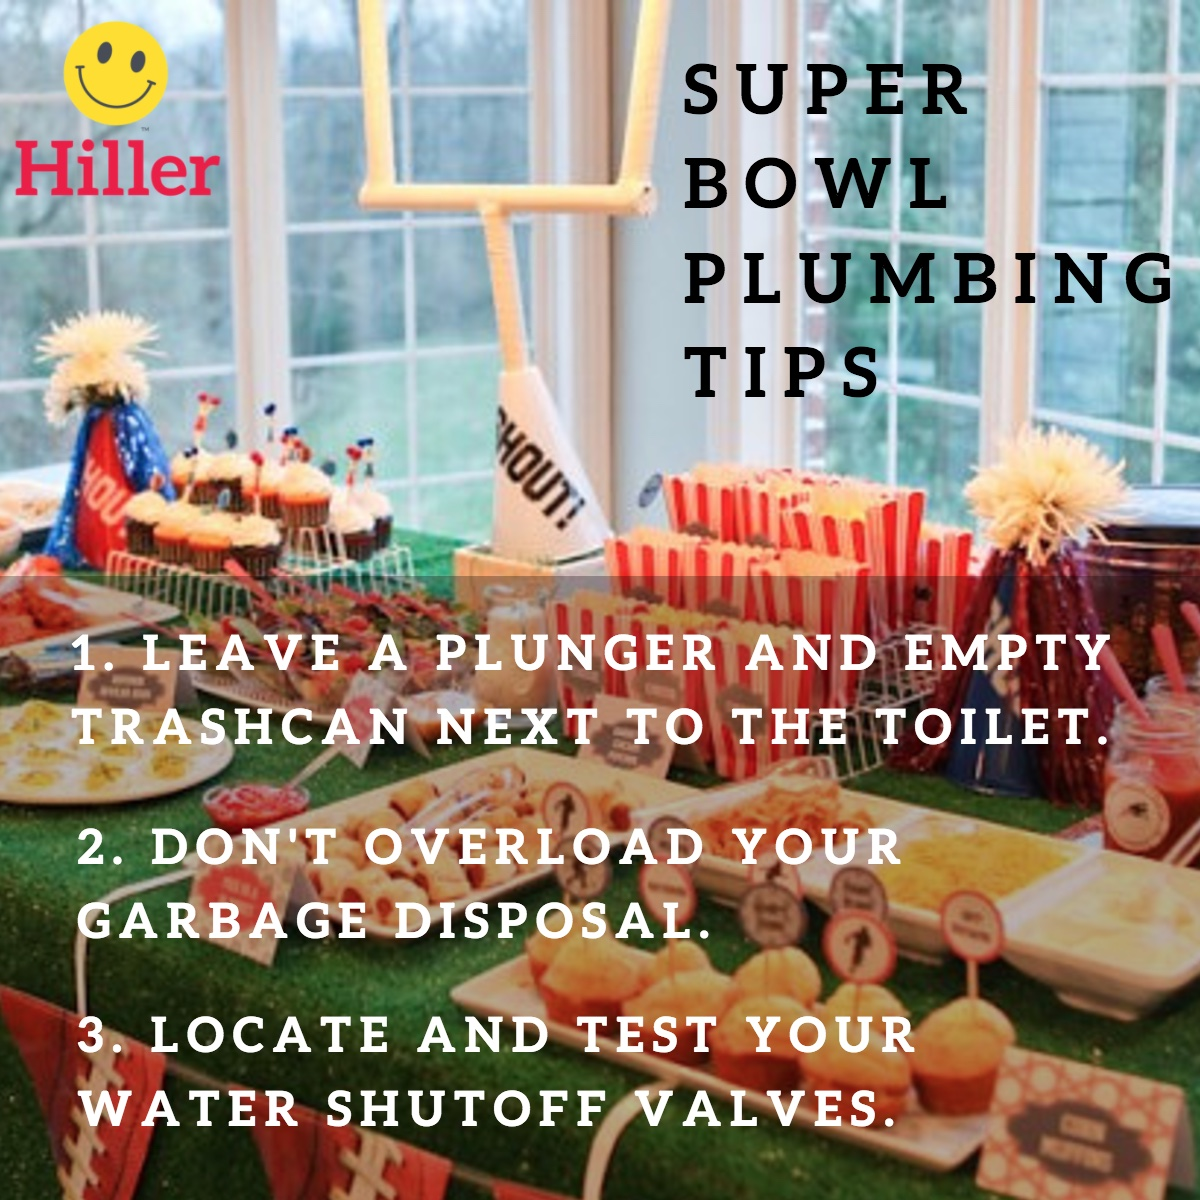 prevent plumbing problems for super bowl and large gatherings